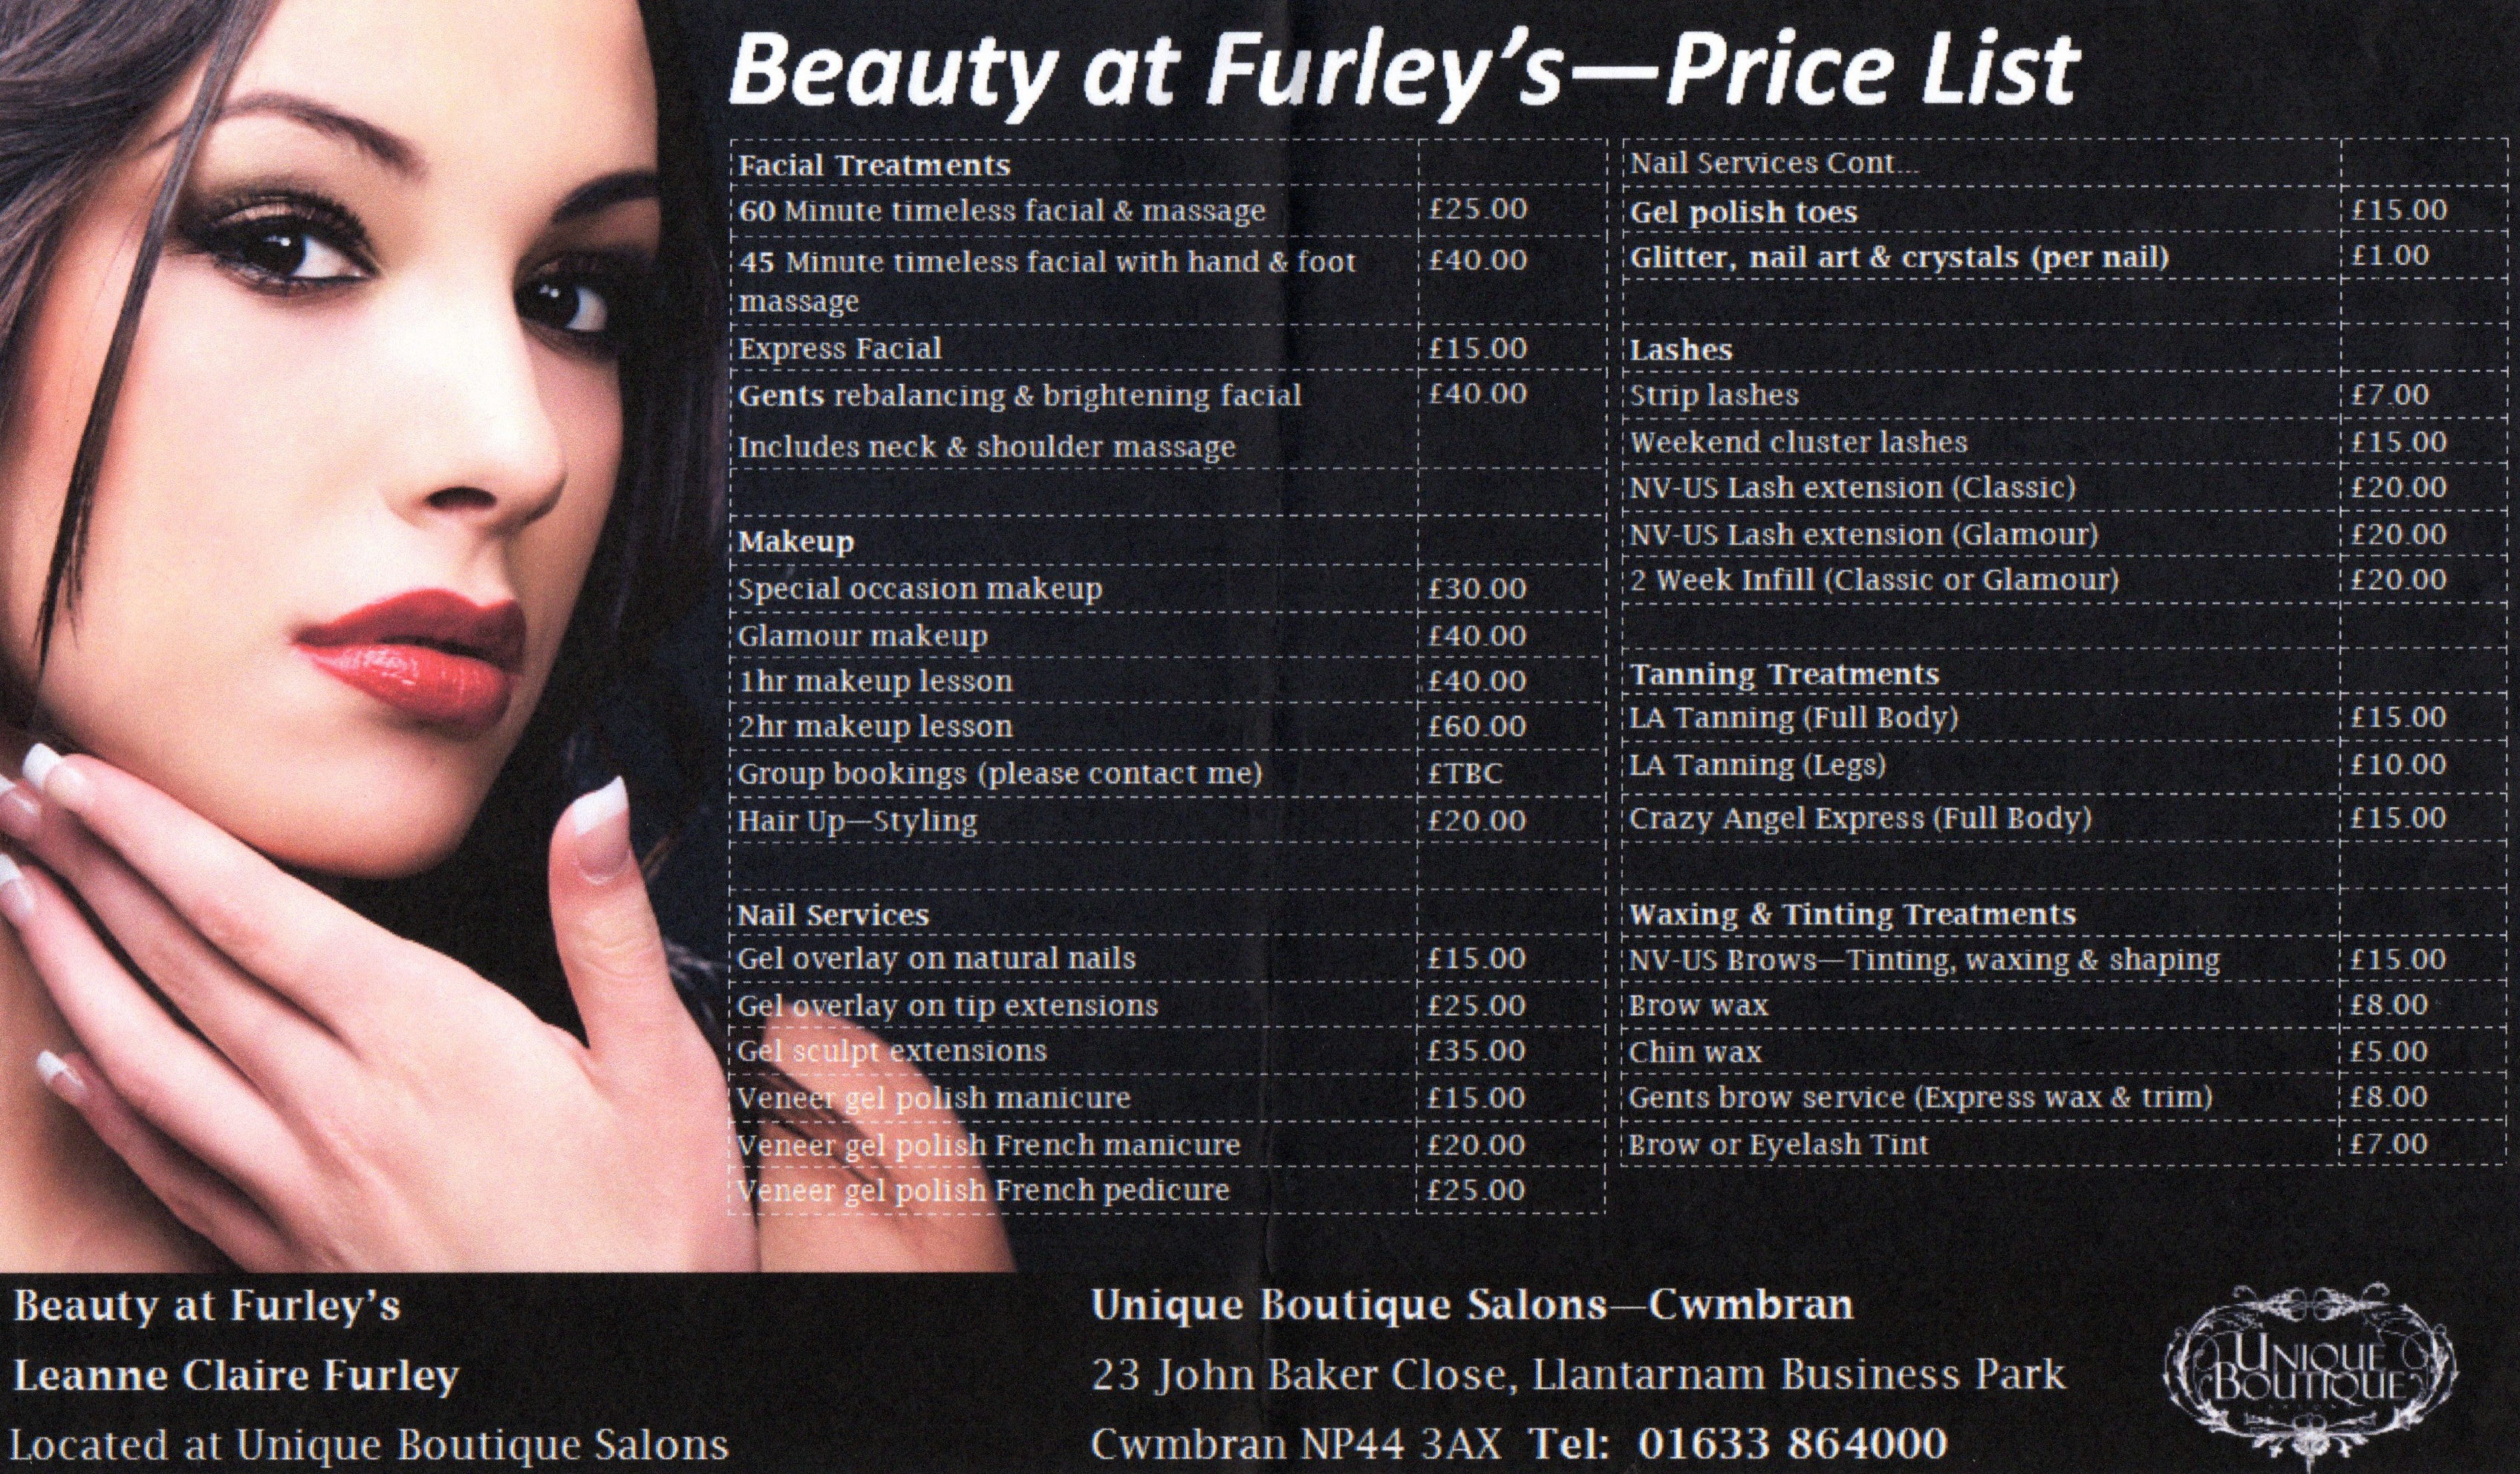 Beauty at Furley's price list